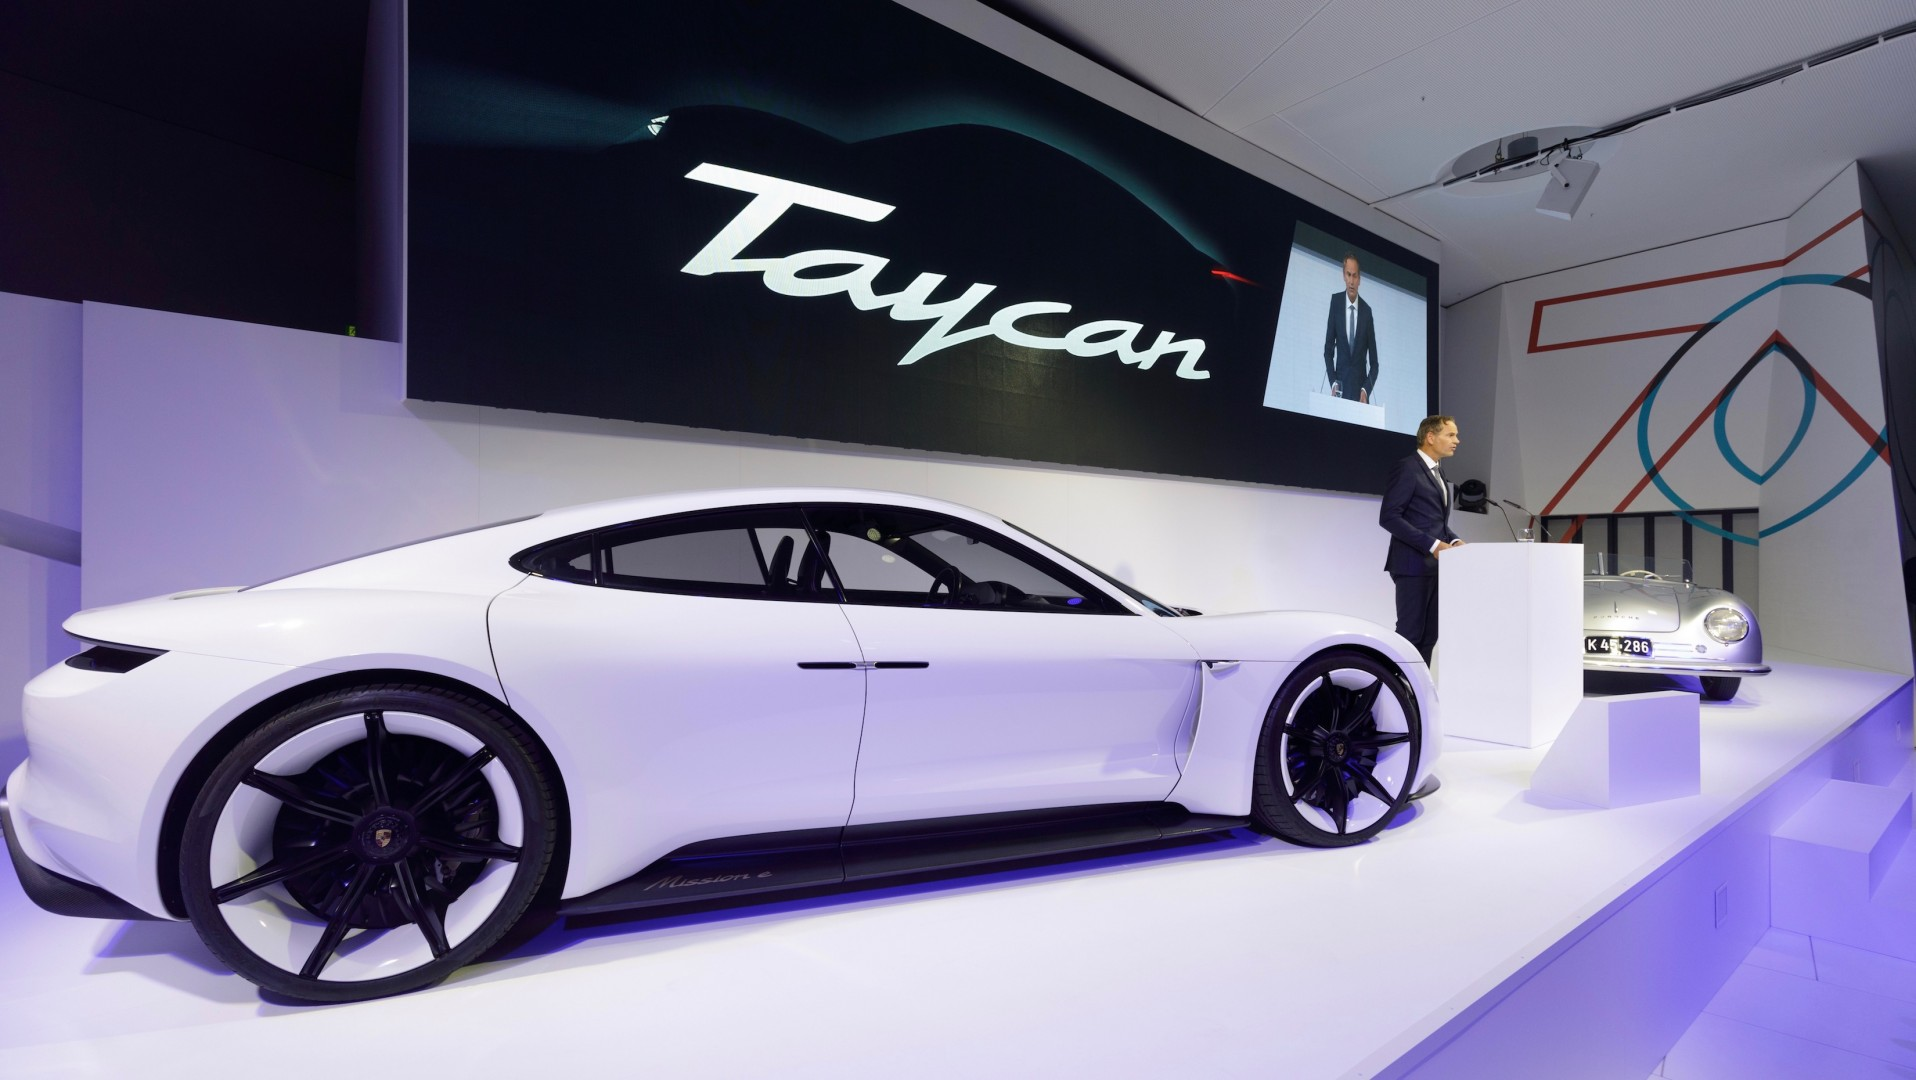 2019 a year of confusing car choices Porsche Taycan